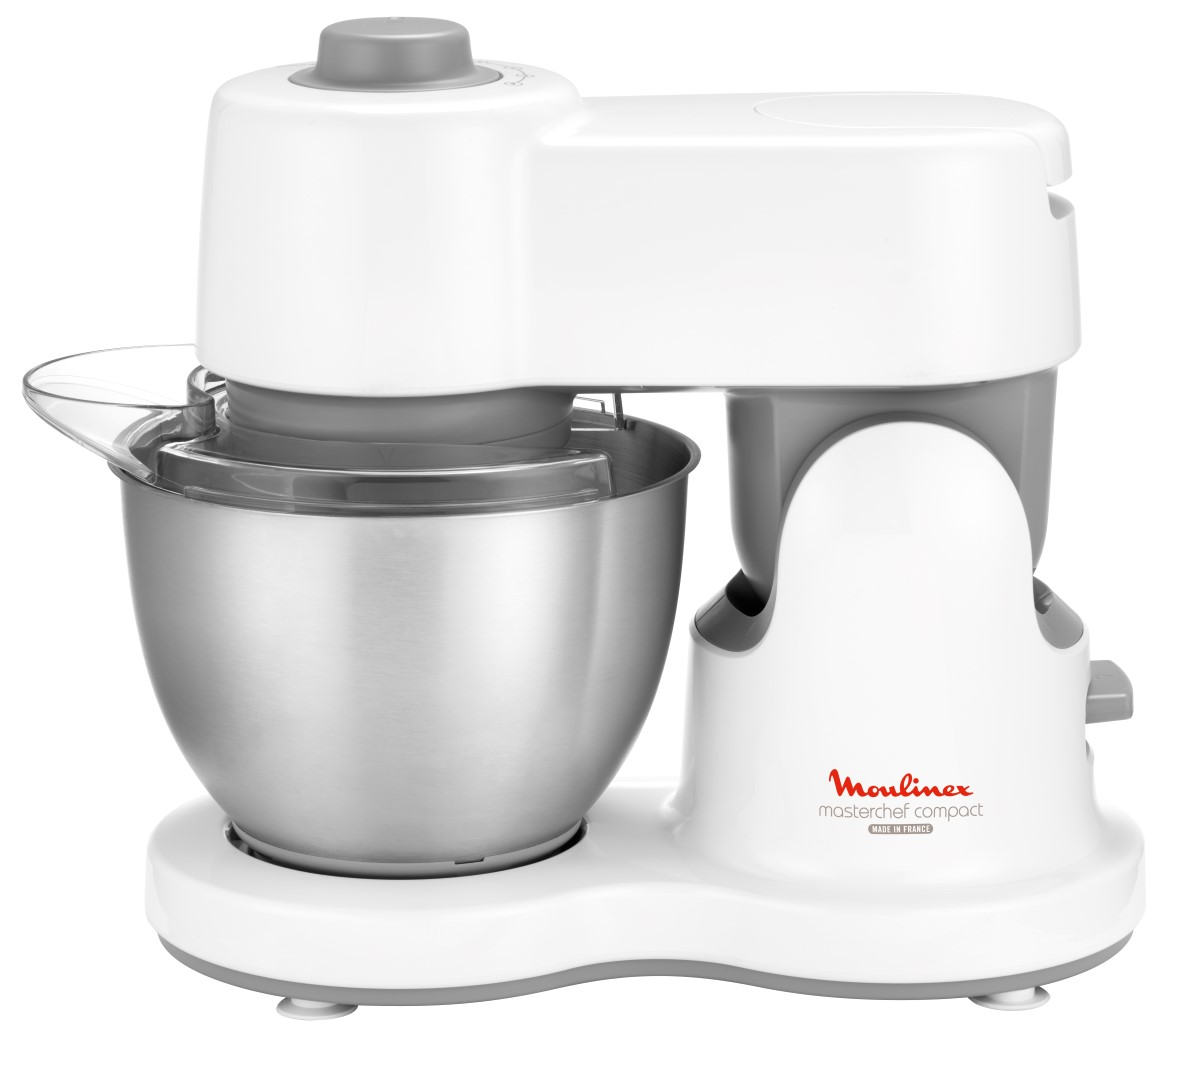 superb Masterchef Kitchen Appliances #5: Become an Ace Chef with the Moulinex Masterchef Gourmet Kitchen Machine